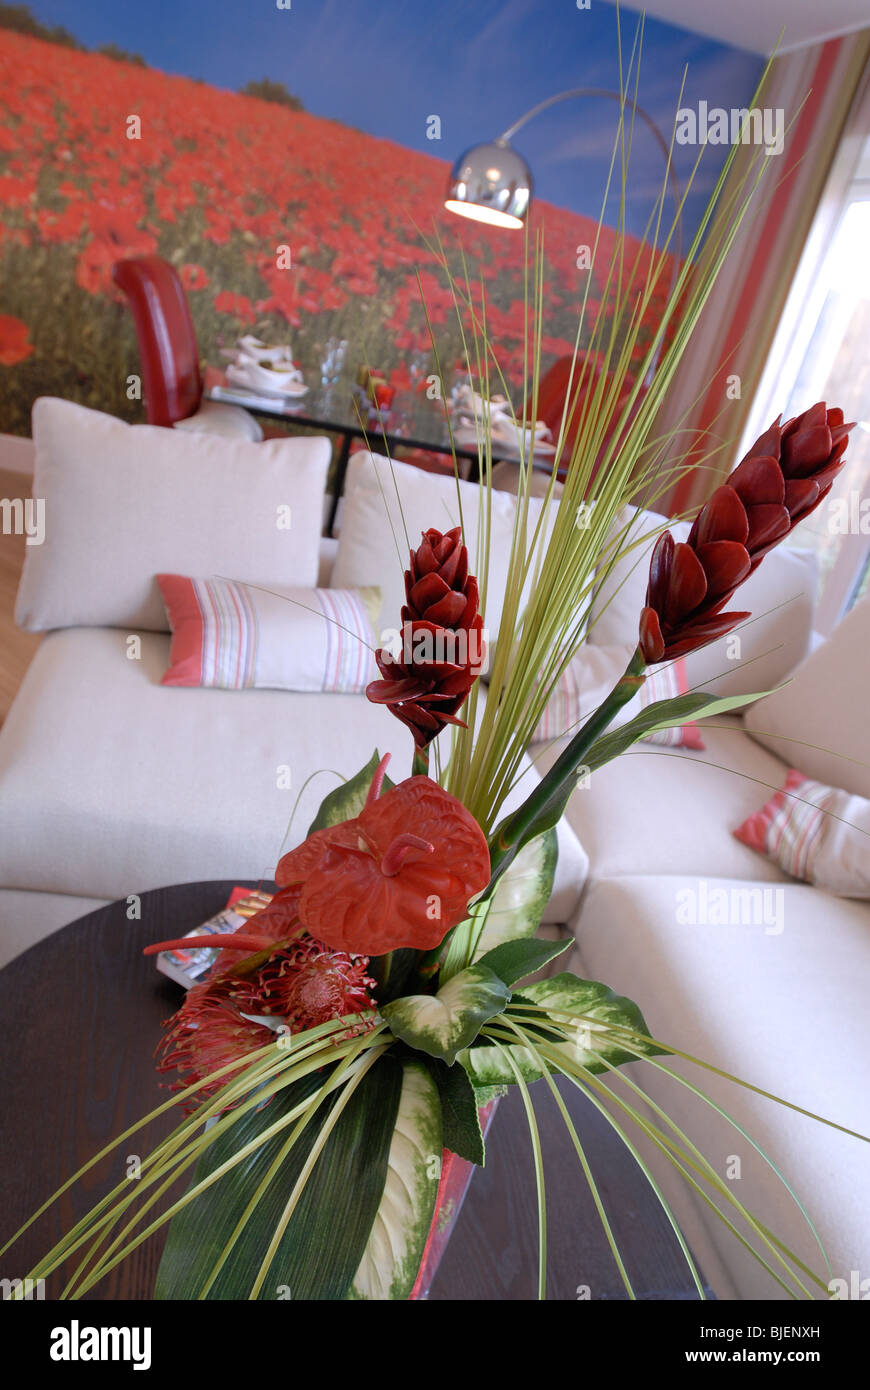 Dried flower decor in a modern living room with poppy wall mural - Stock Image